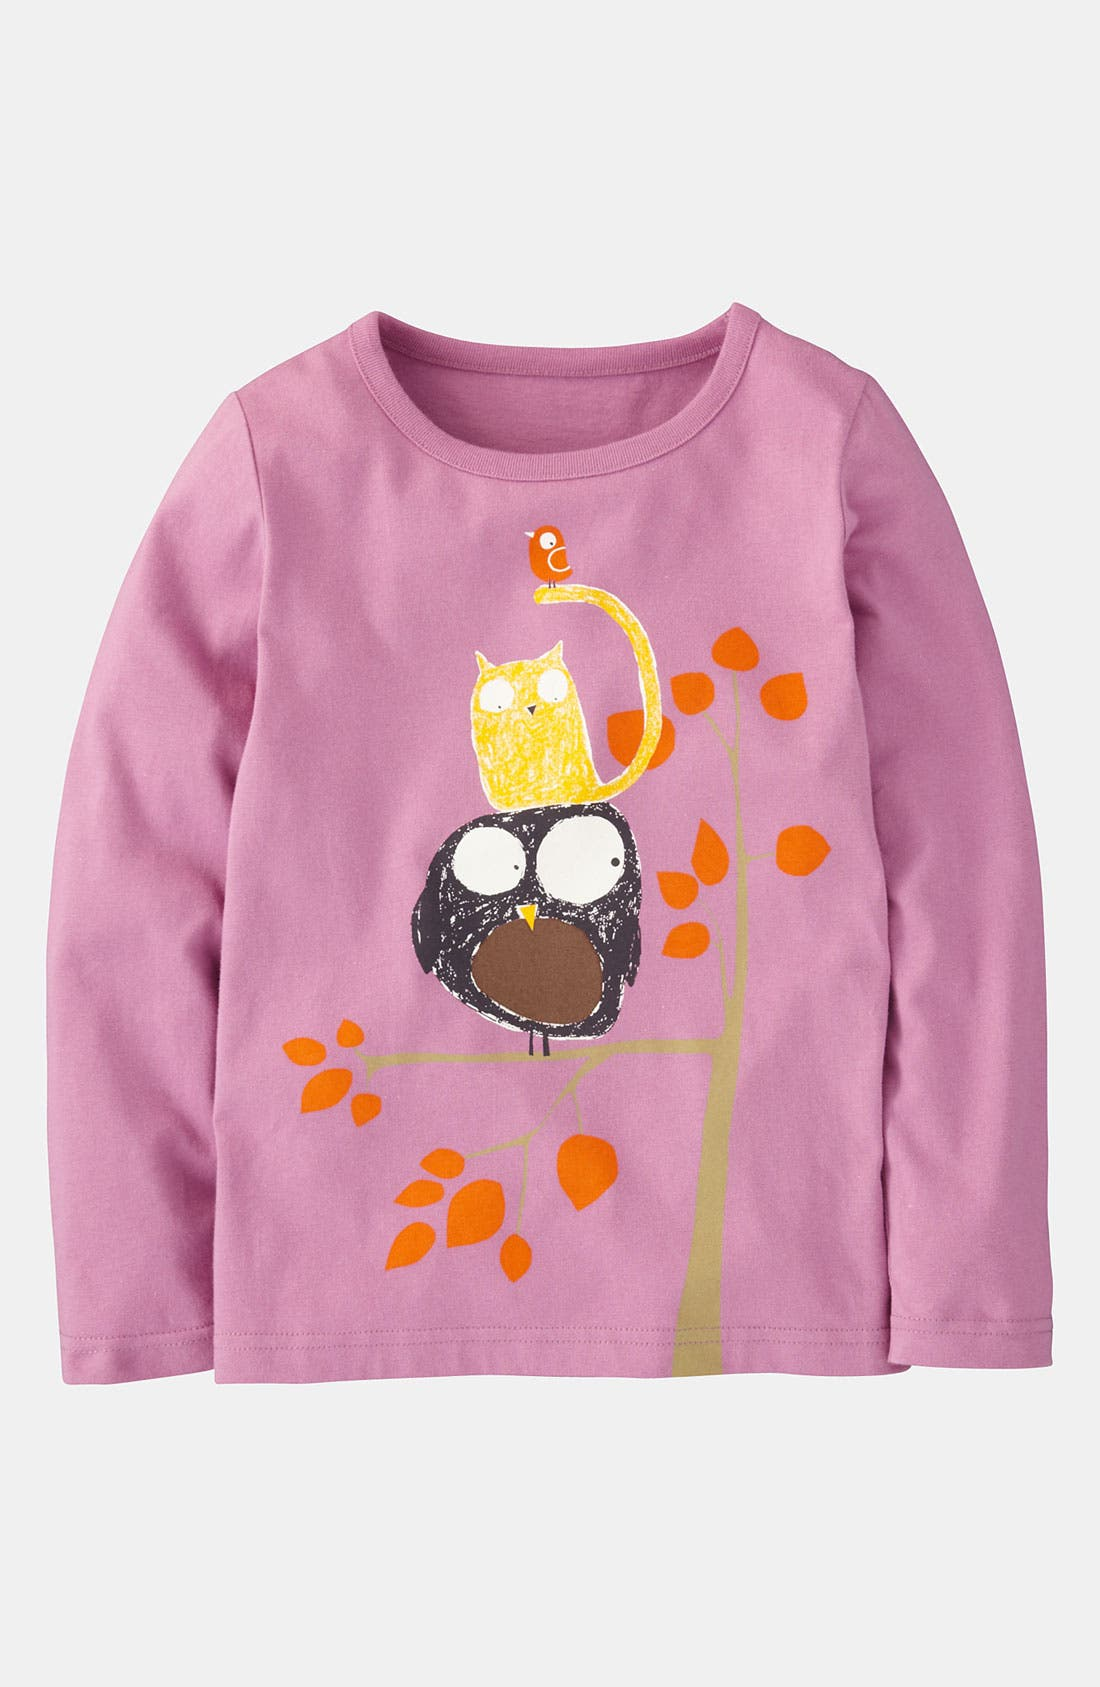 Main Image - Mini Boden 'Feathered Friends' Tee (Toddler)